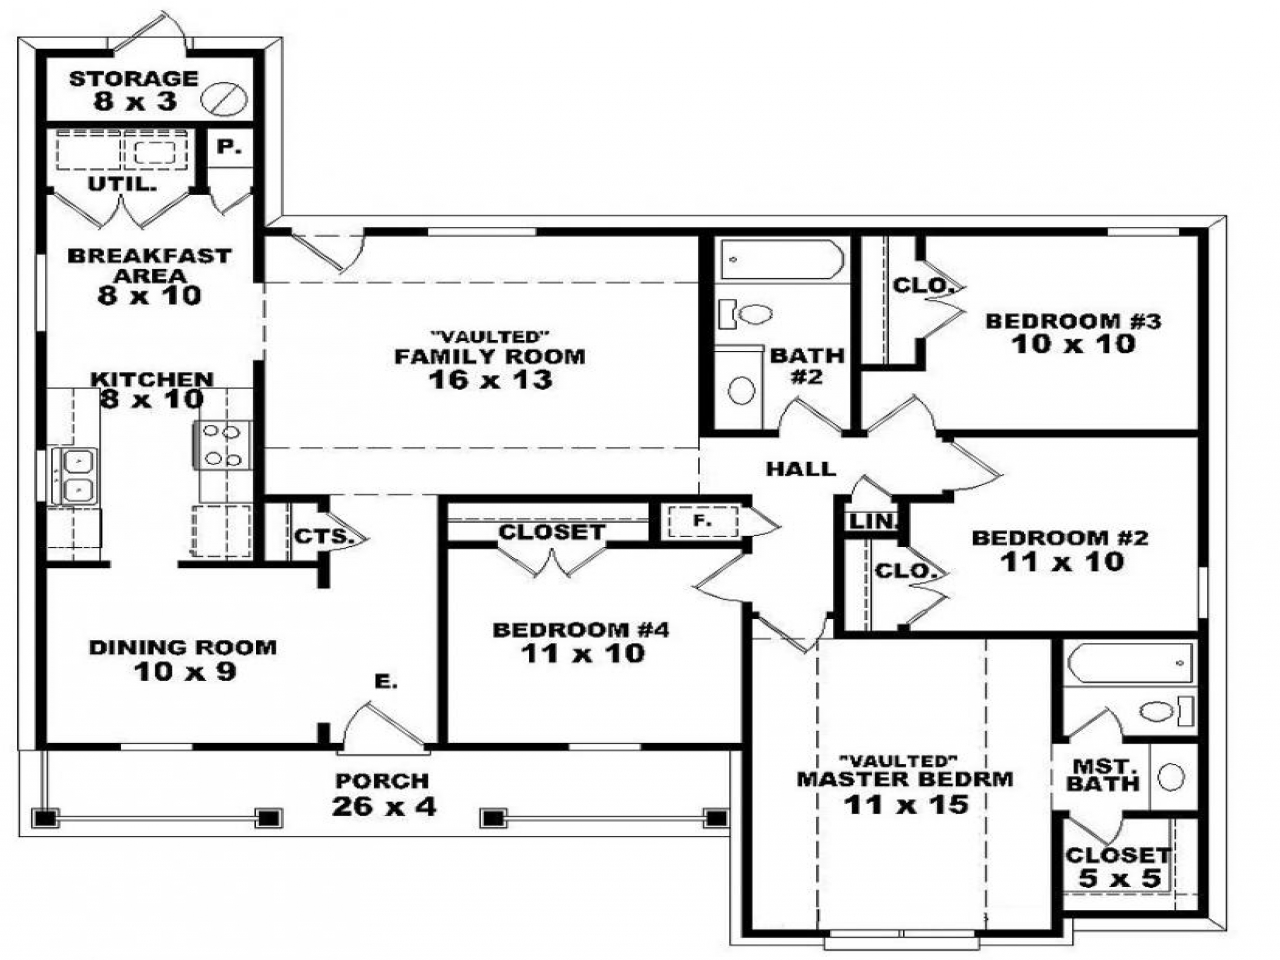 Story 3 Bedroom With Staircase 4 Bedroom 2 Story House